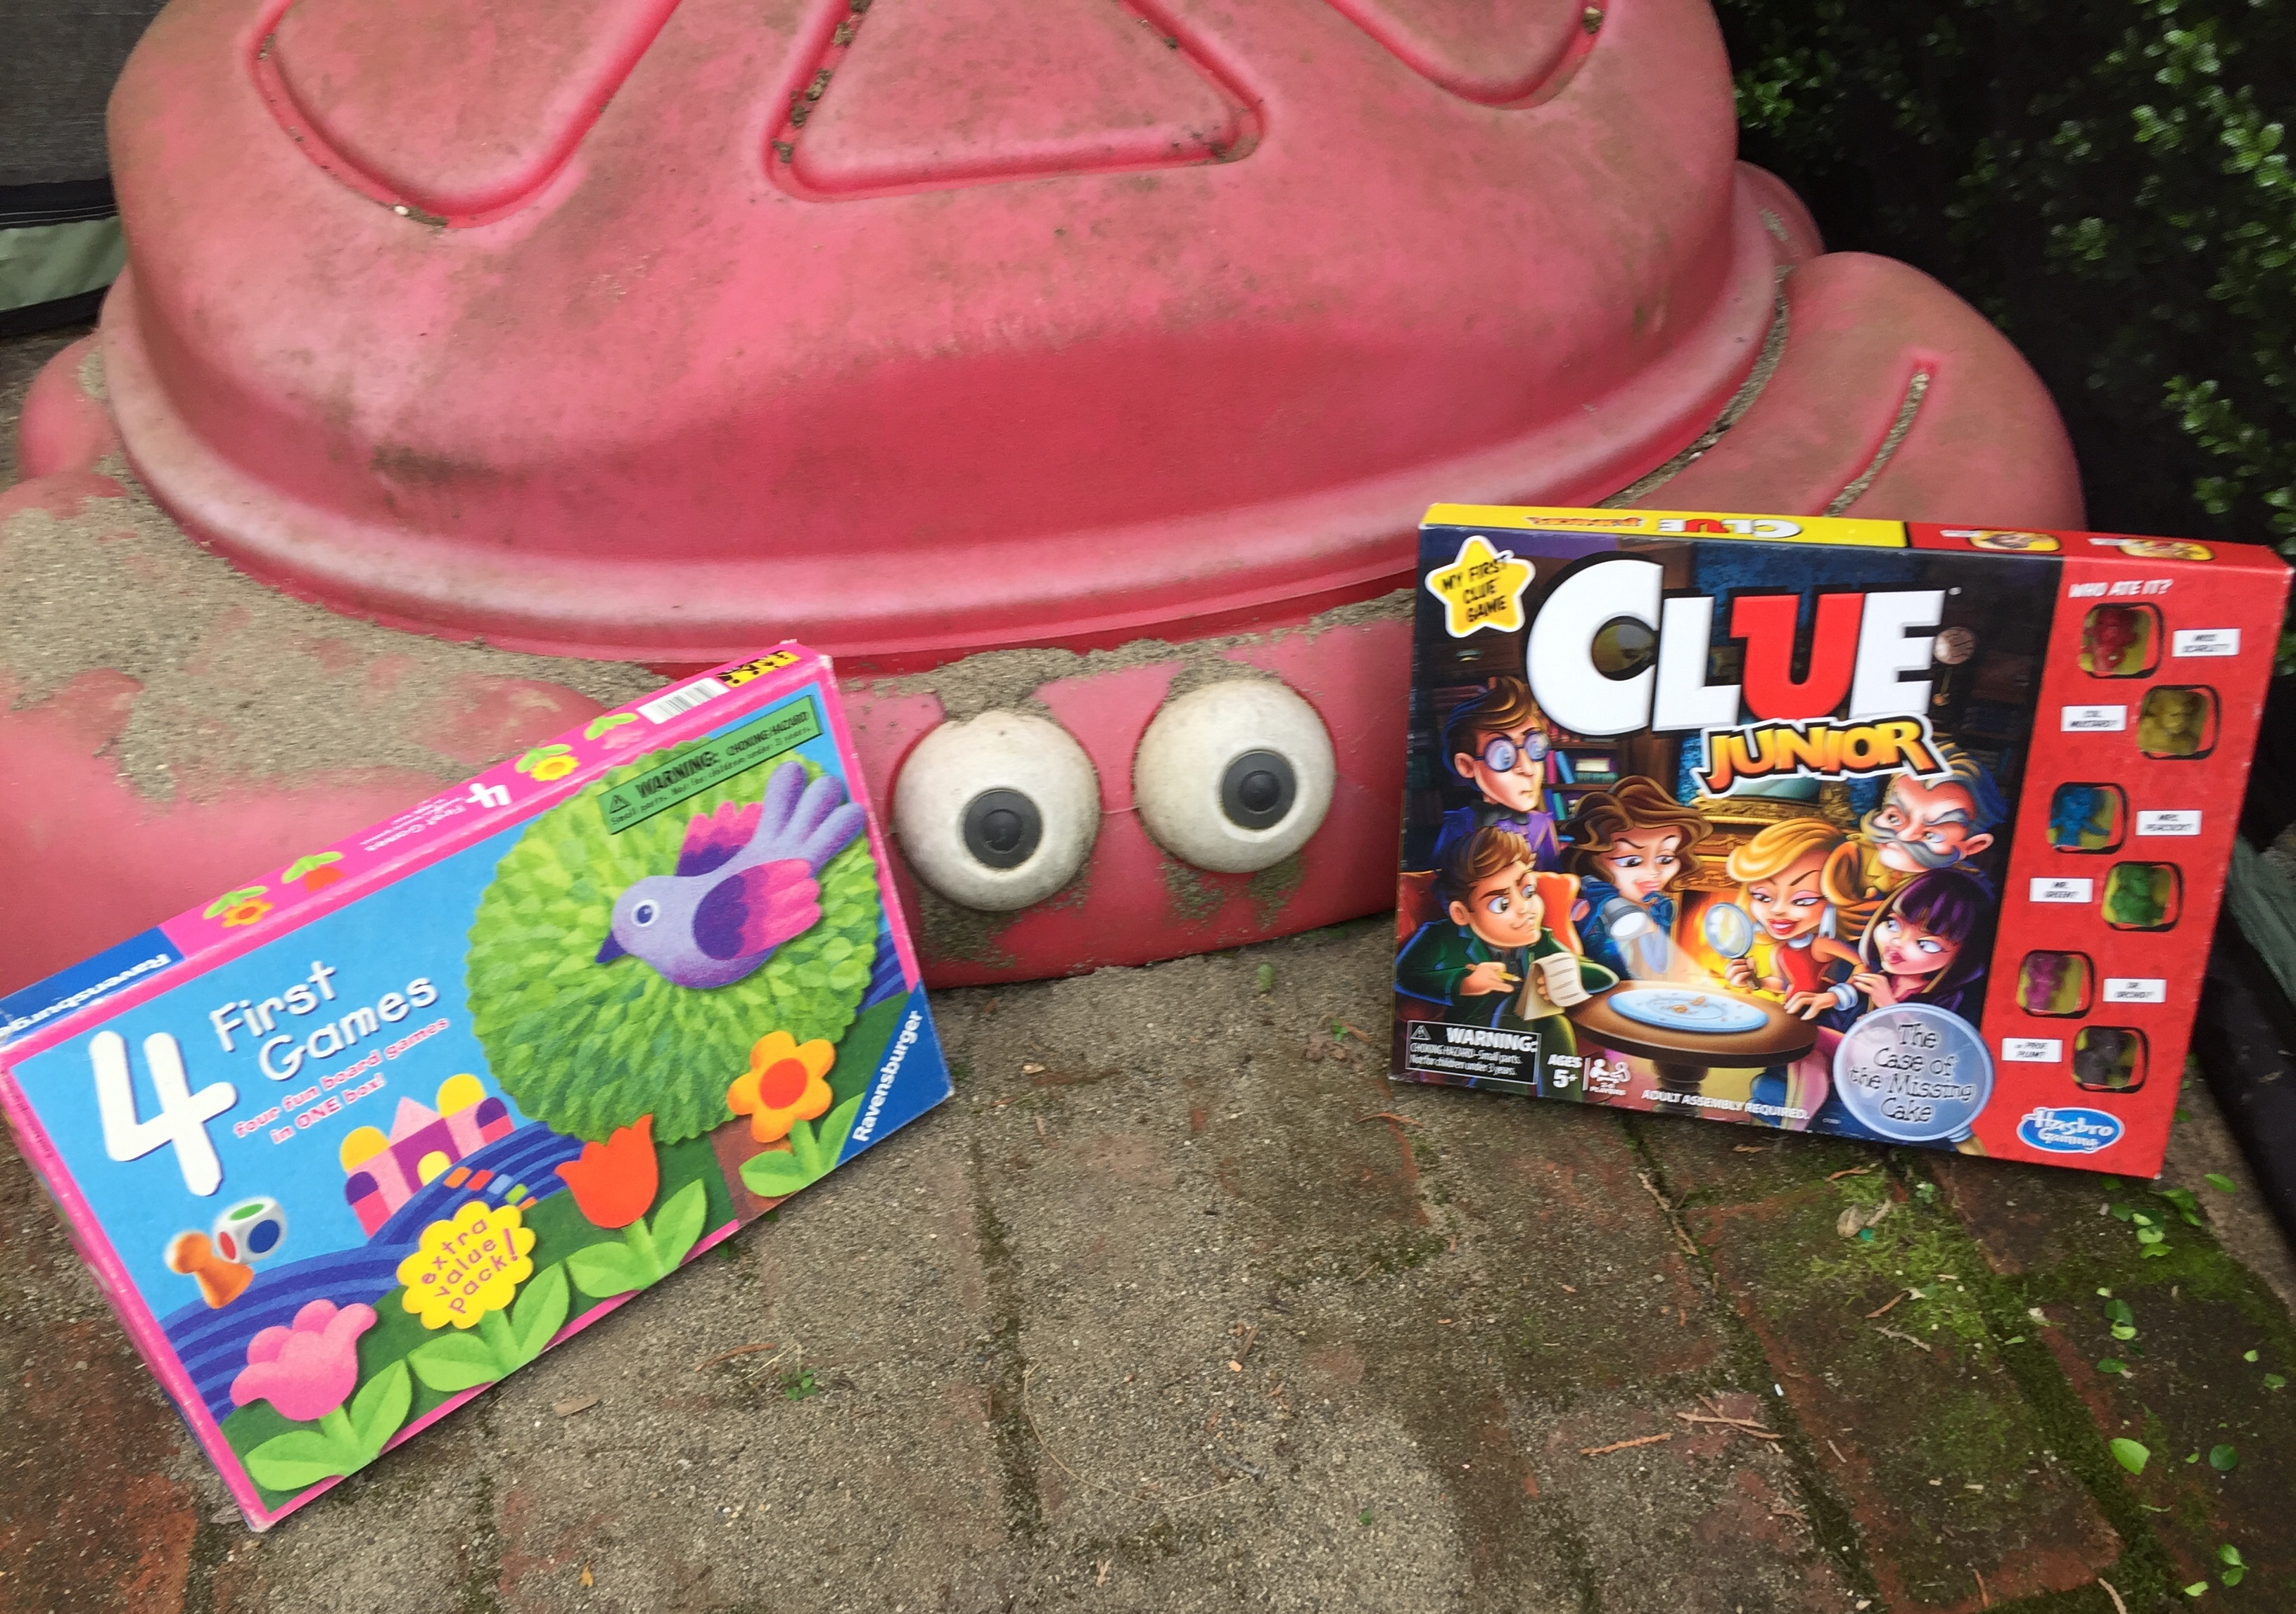 Four First Games by Ravensburger and Clue Junior